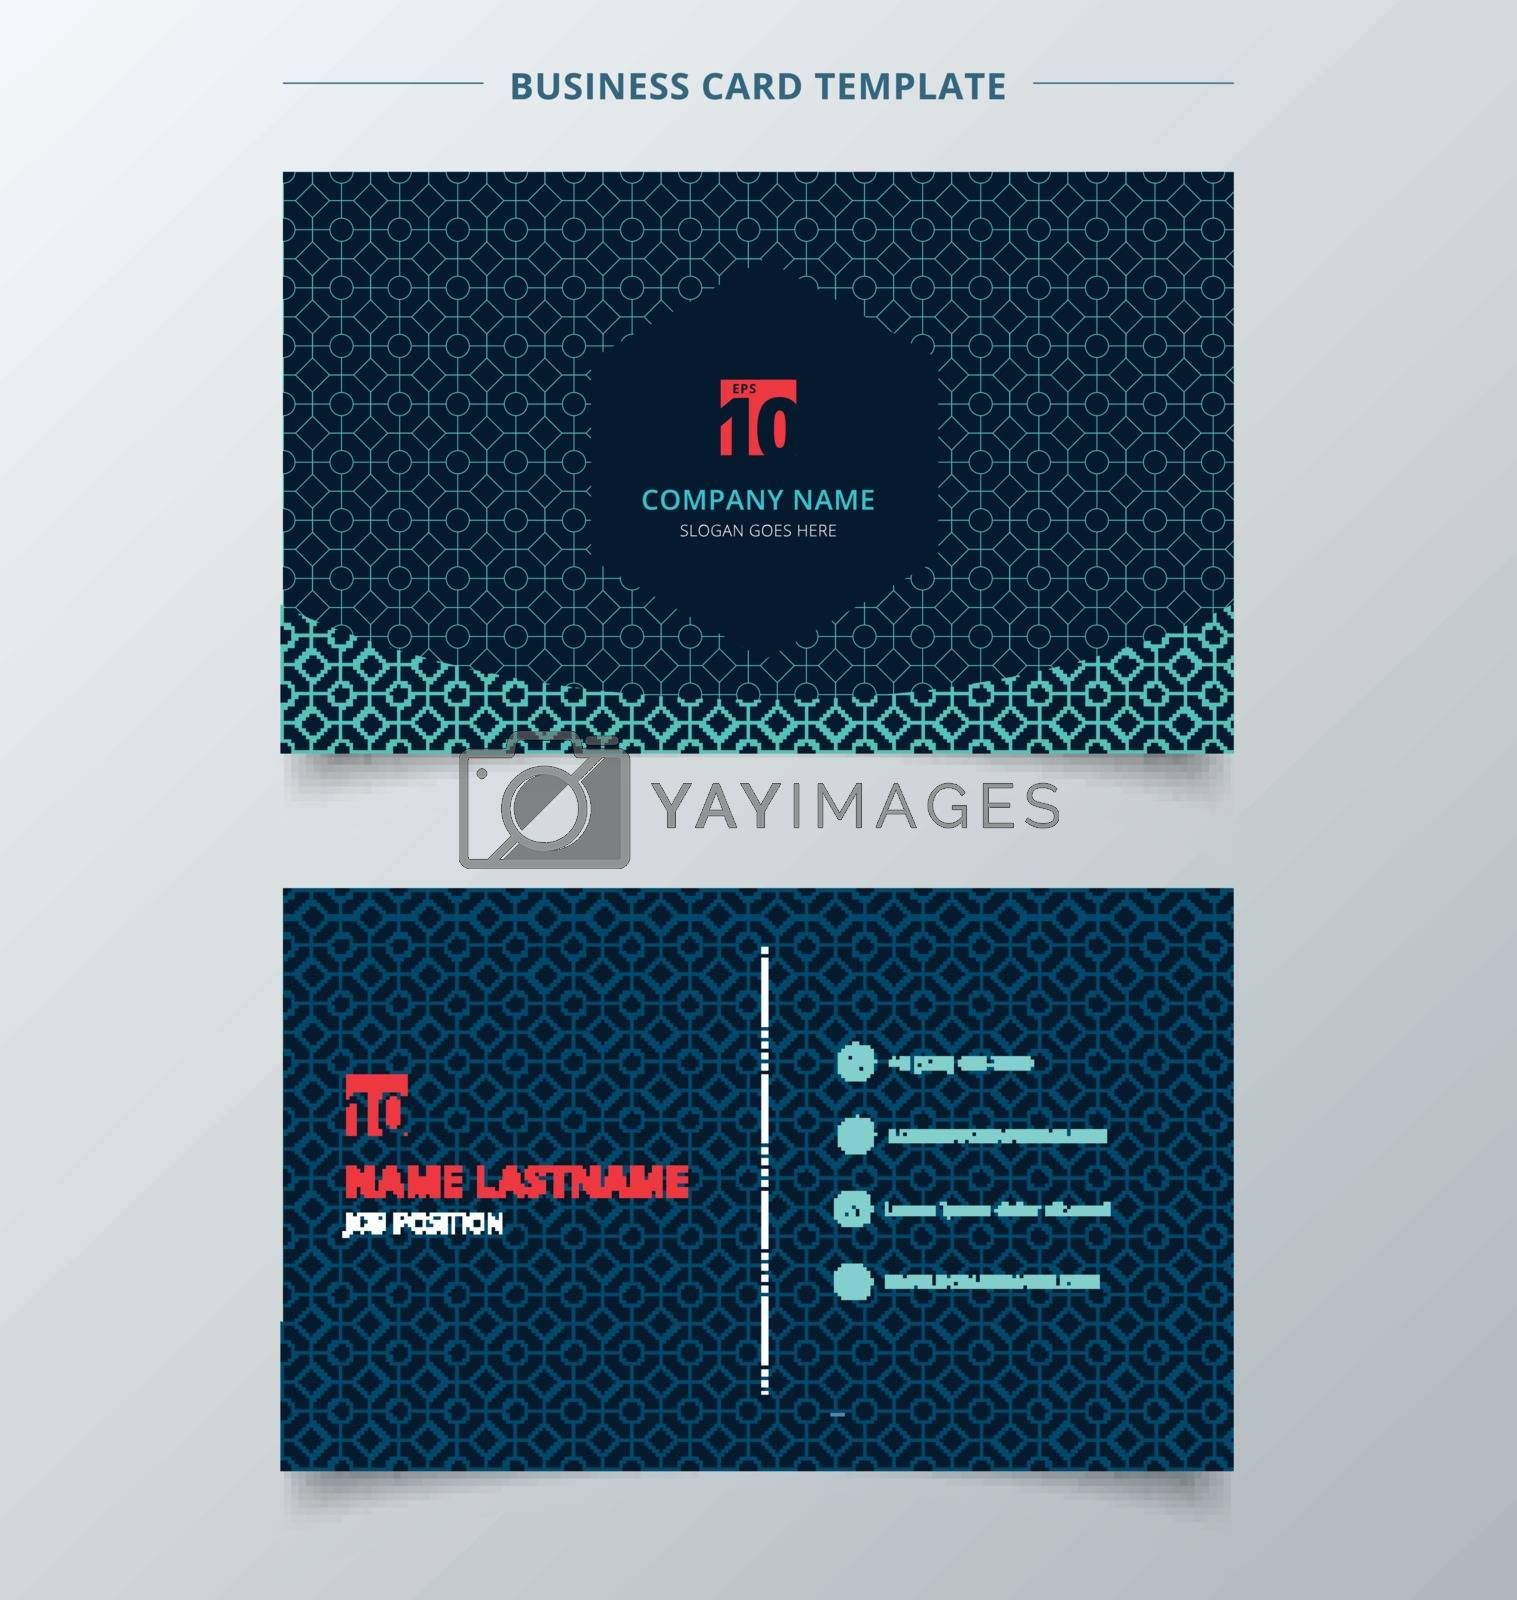 Creative business card and name card template dark blue color modern with square octagon and circle pattern abstract concept and commercial design. vector graphic illustration